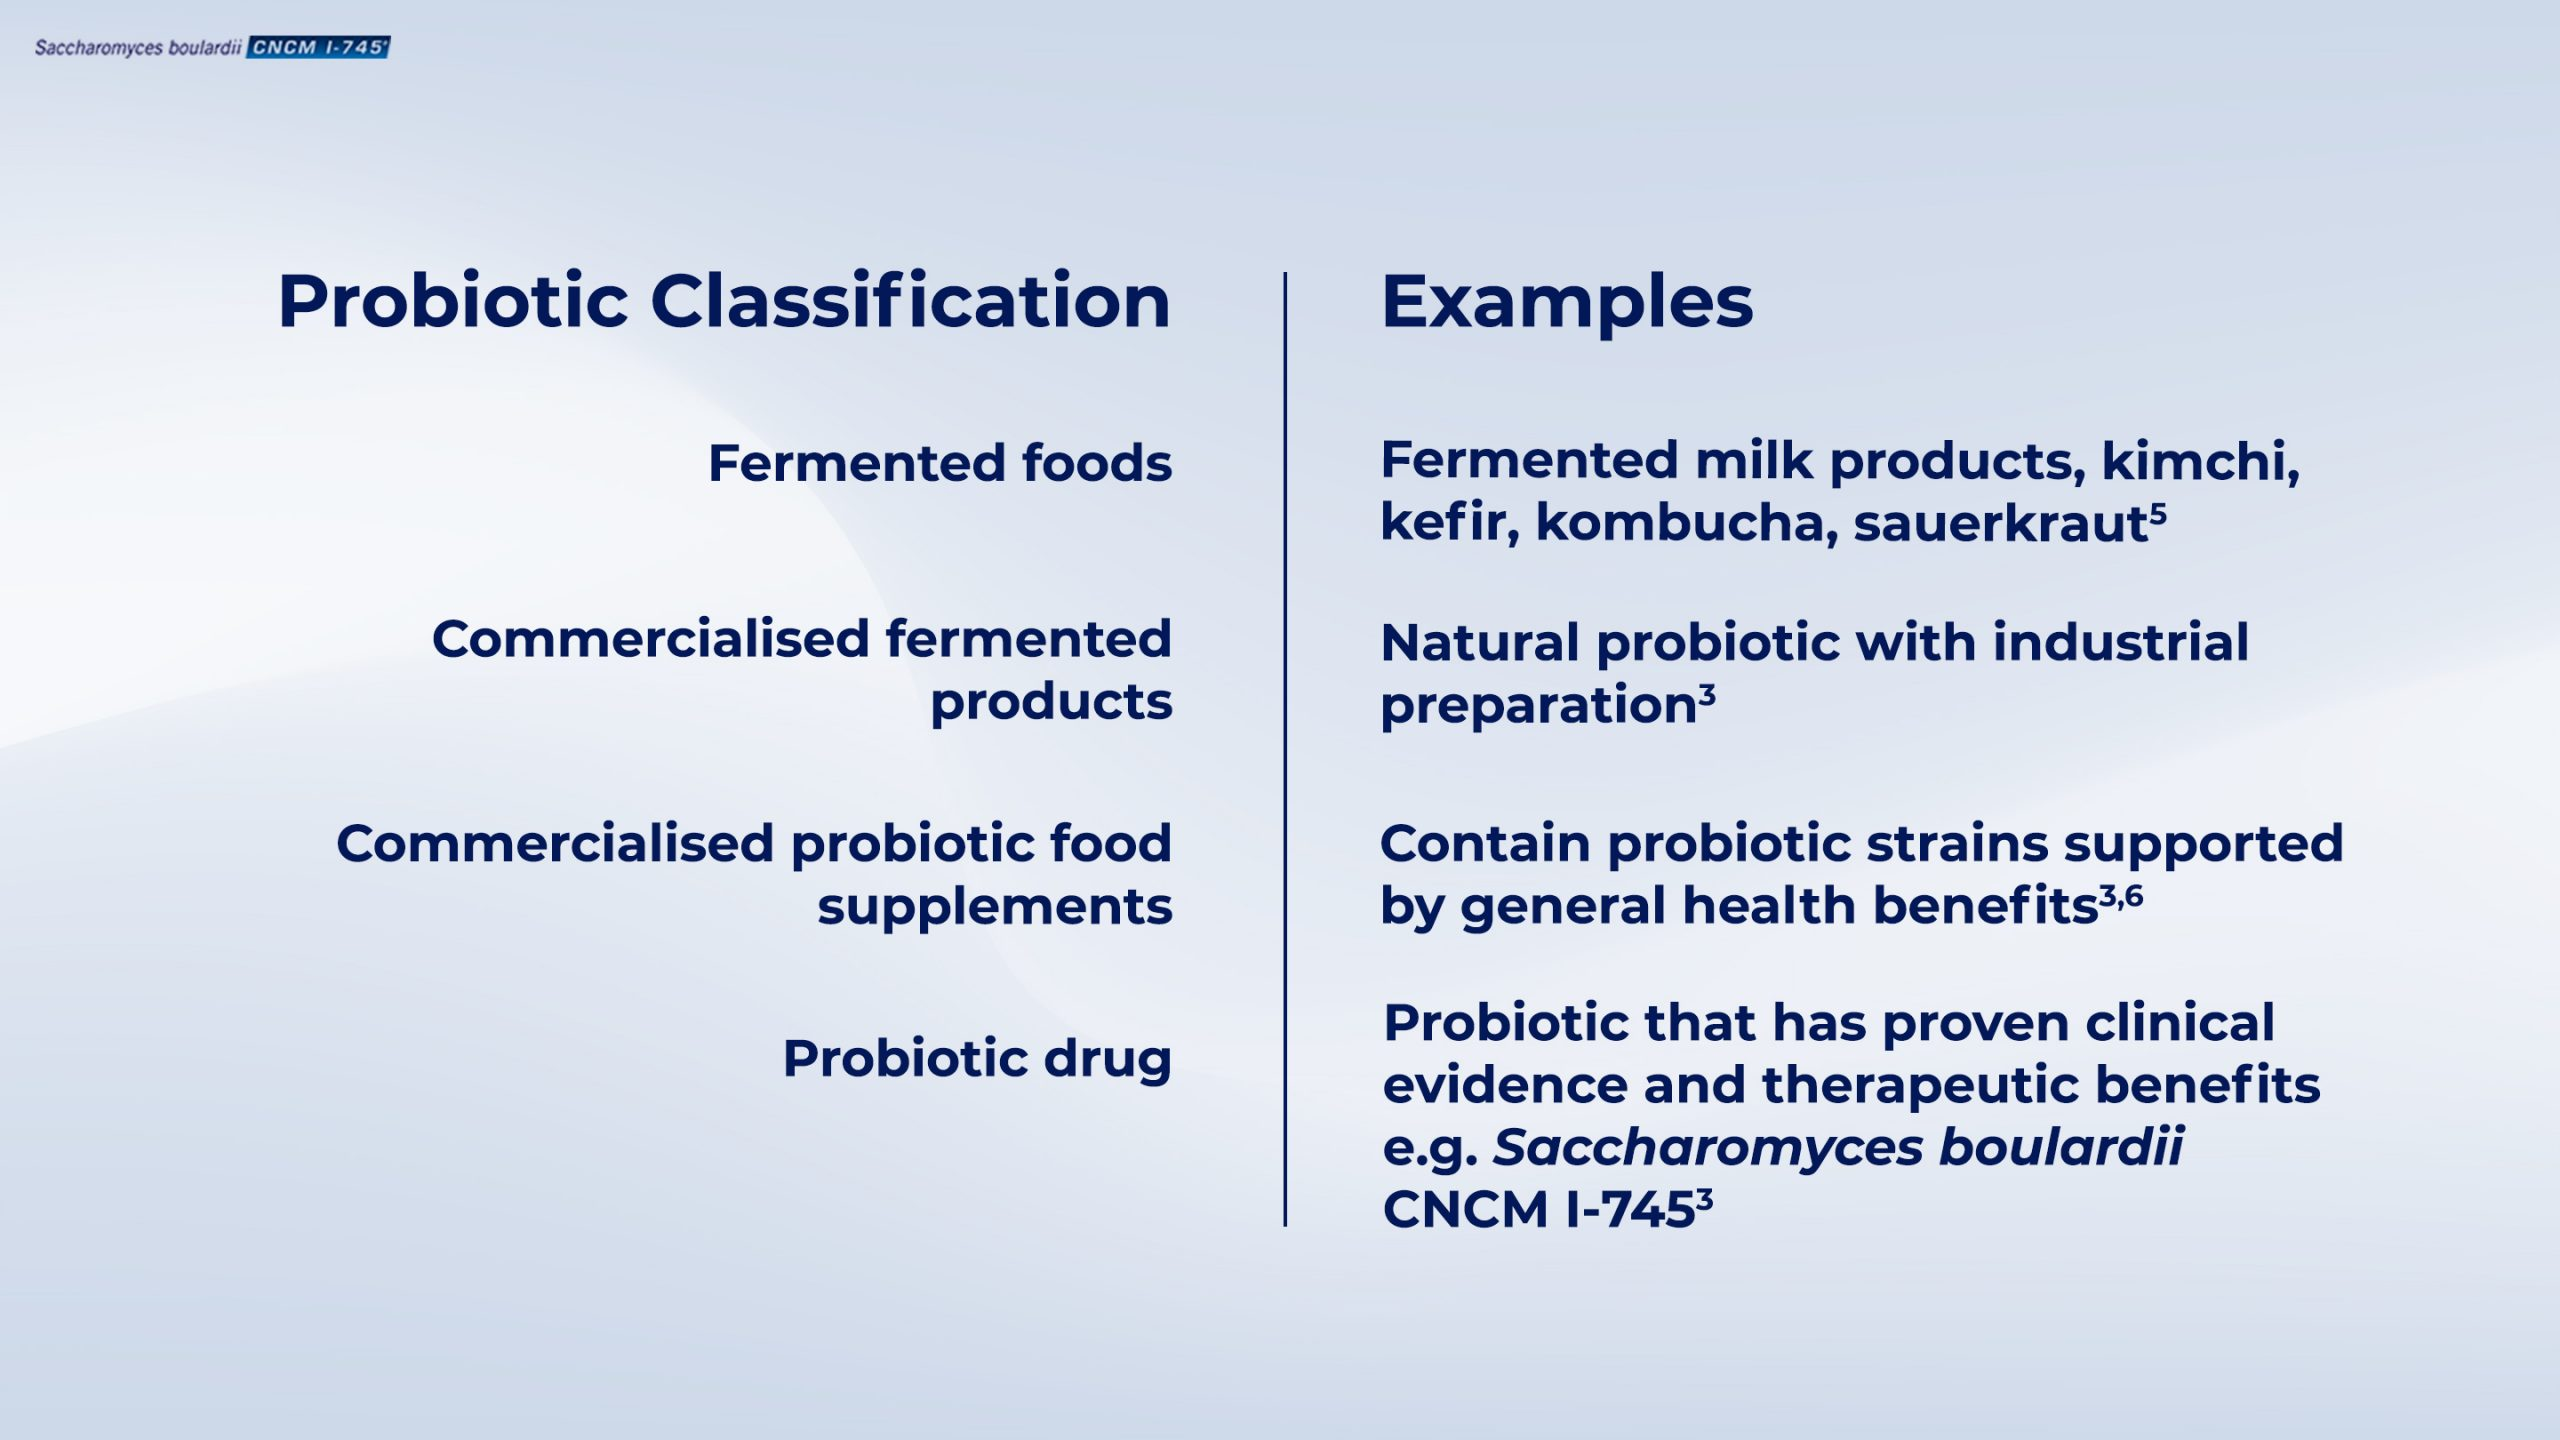 image https://www.saccharomycesboulardii.com/wp-content/uploads/2020/06/probiotic-classification-150x150.jpg